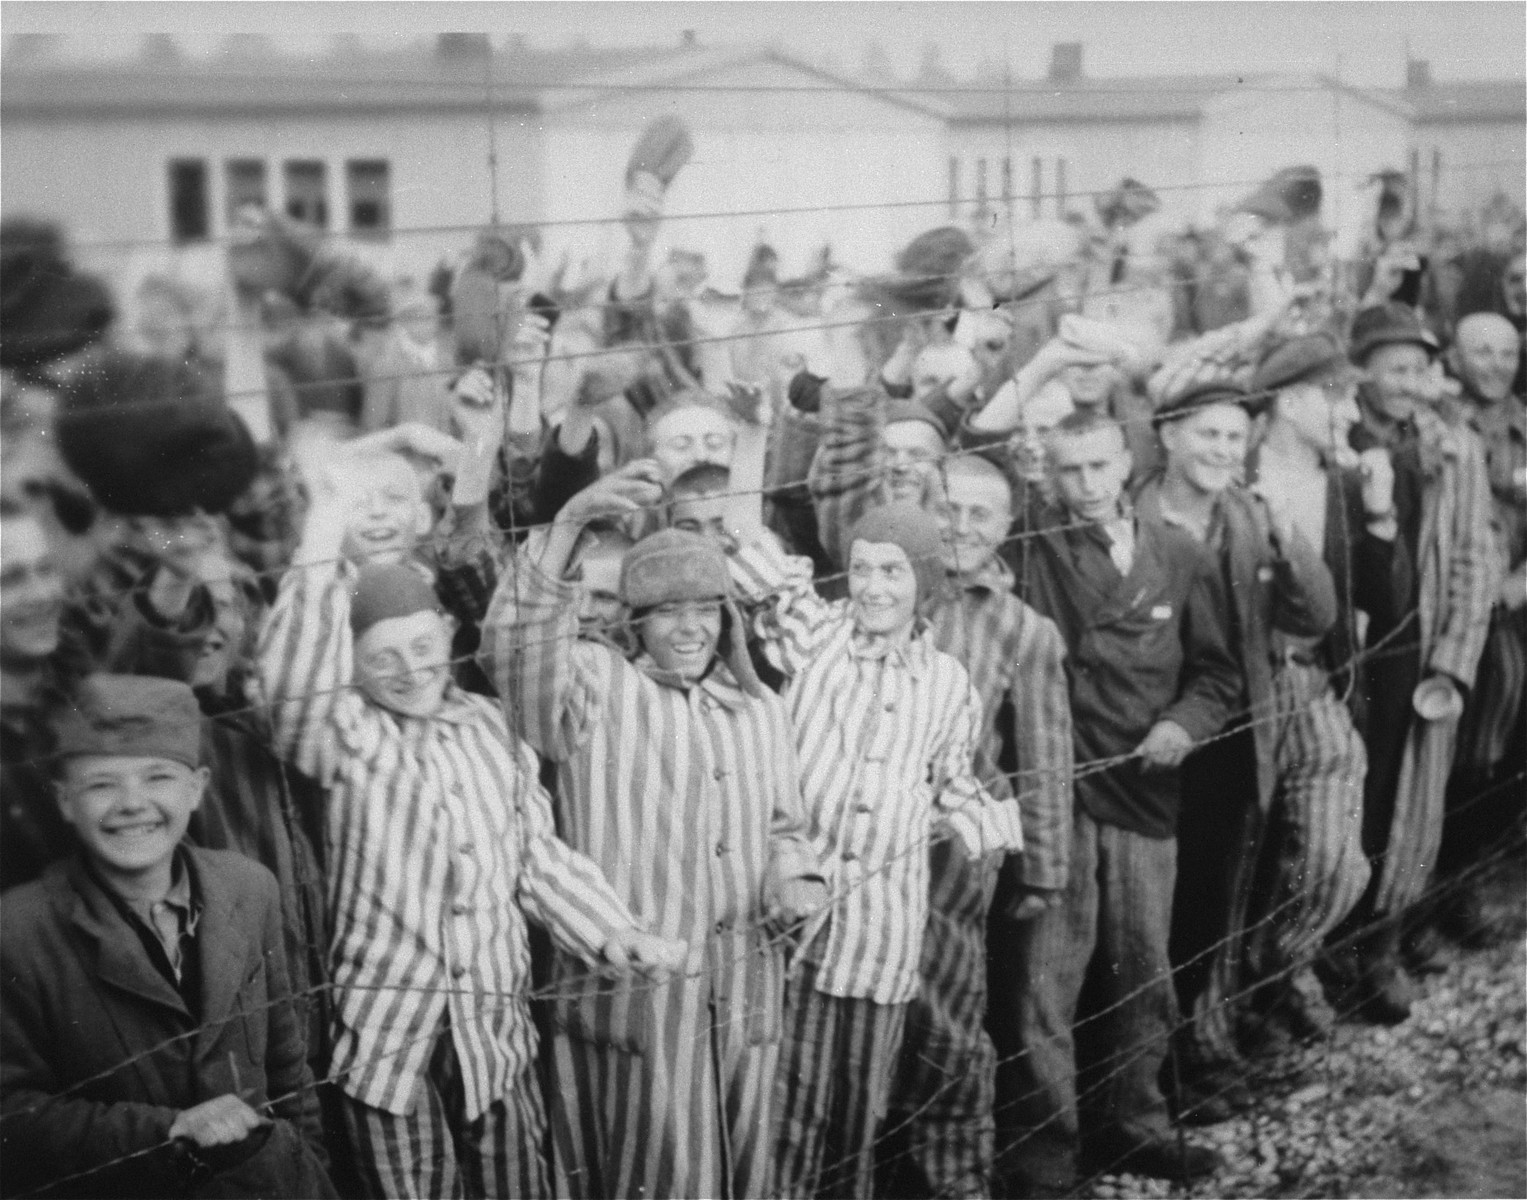 Young and old survivors in Dachau cheer arriving U.S. troops.    In the middle stands 18 yr. old Juda Kukiela, the son of Mordcha Mendel and Ruchla Ita.  Second from the left is Gyorgy Laszlo Spiegel (b. 5/25/30) from Budapest, Hungary.